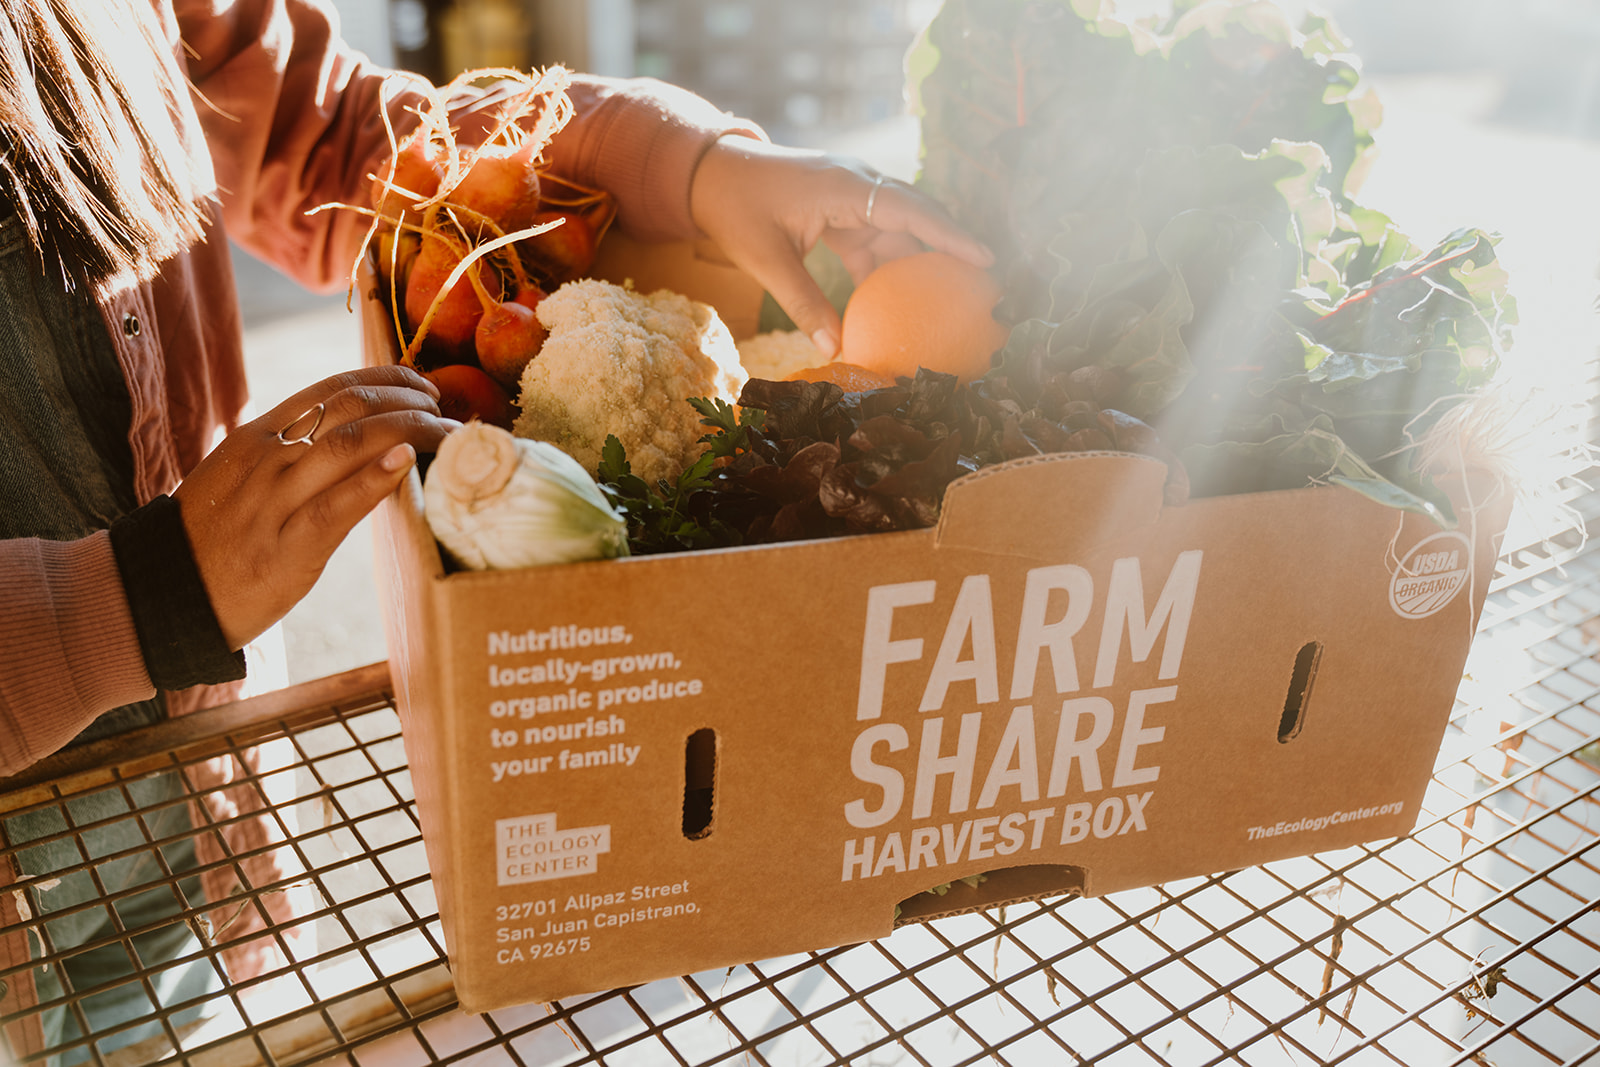 Farm Share Harvest Box being opened by member.